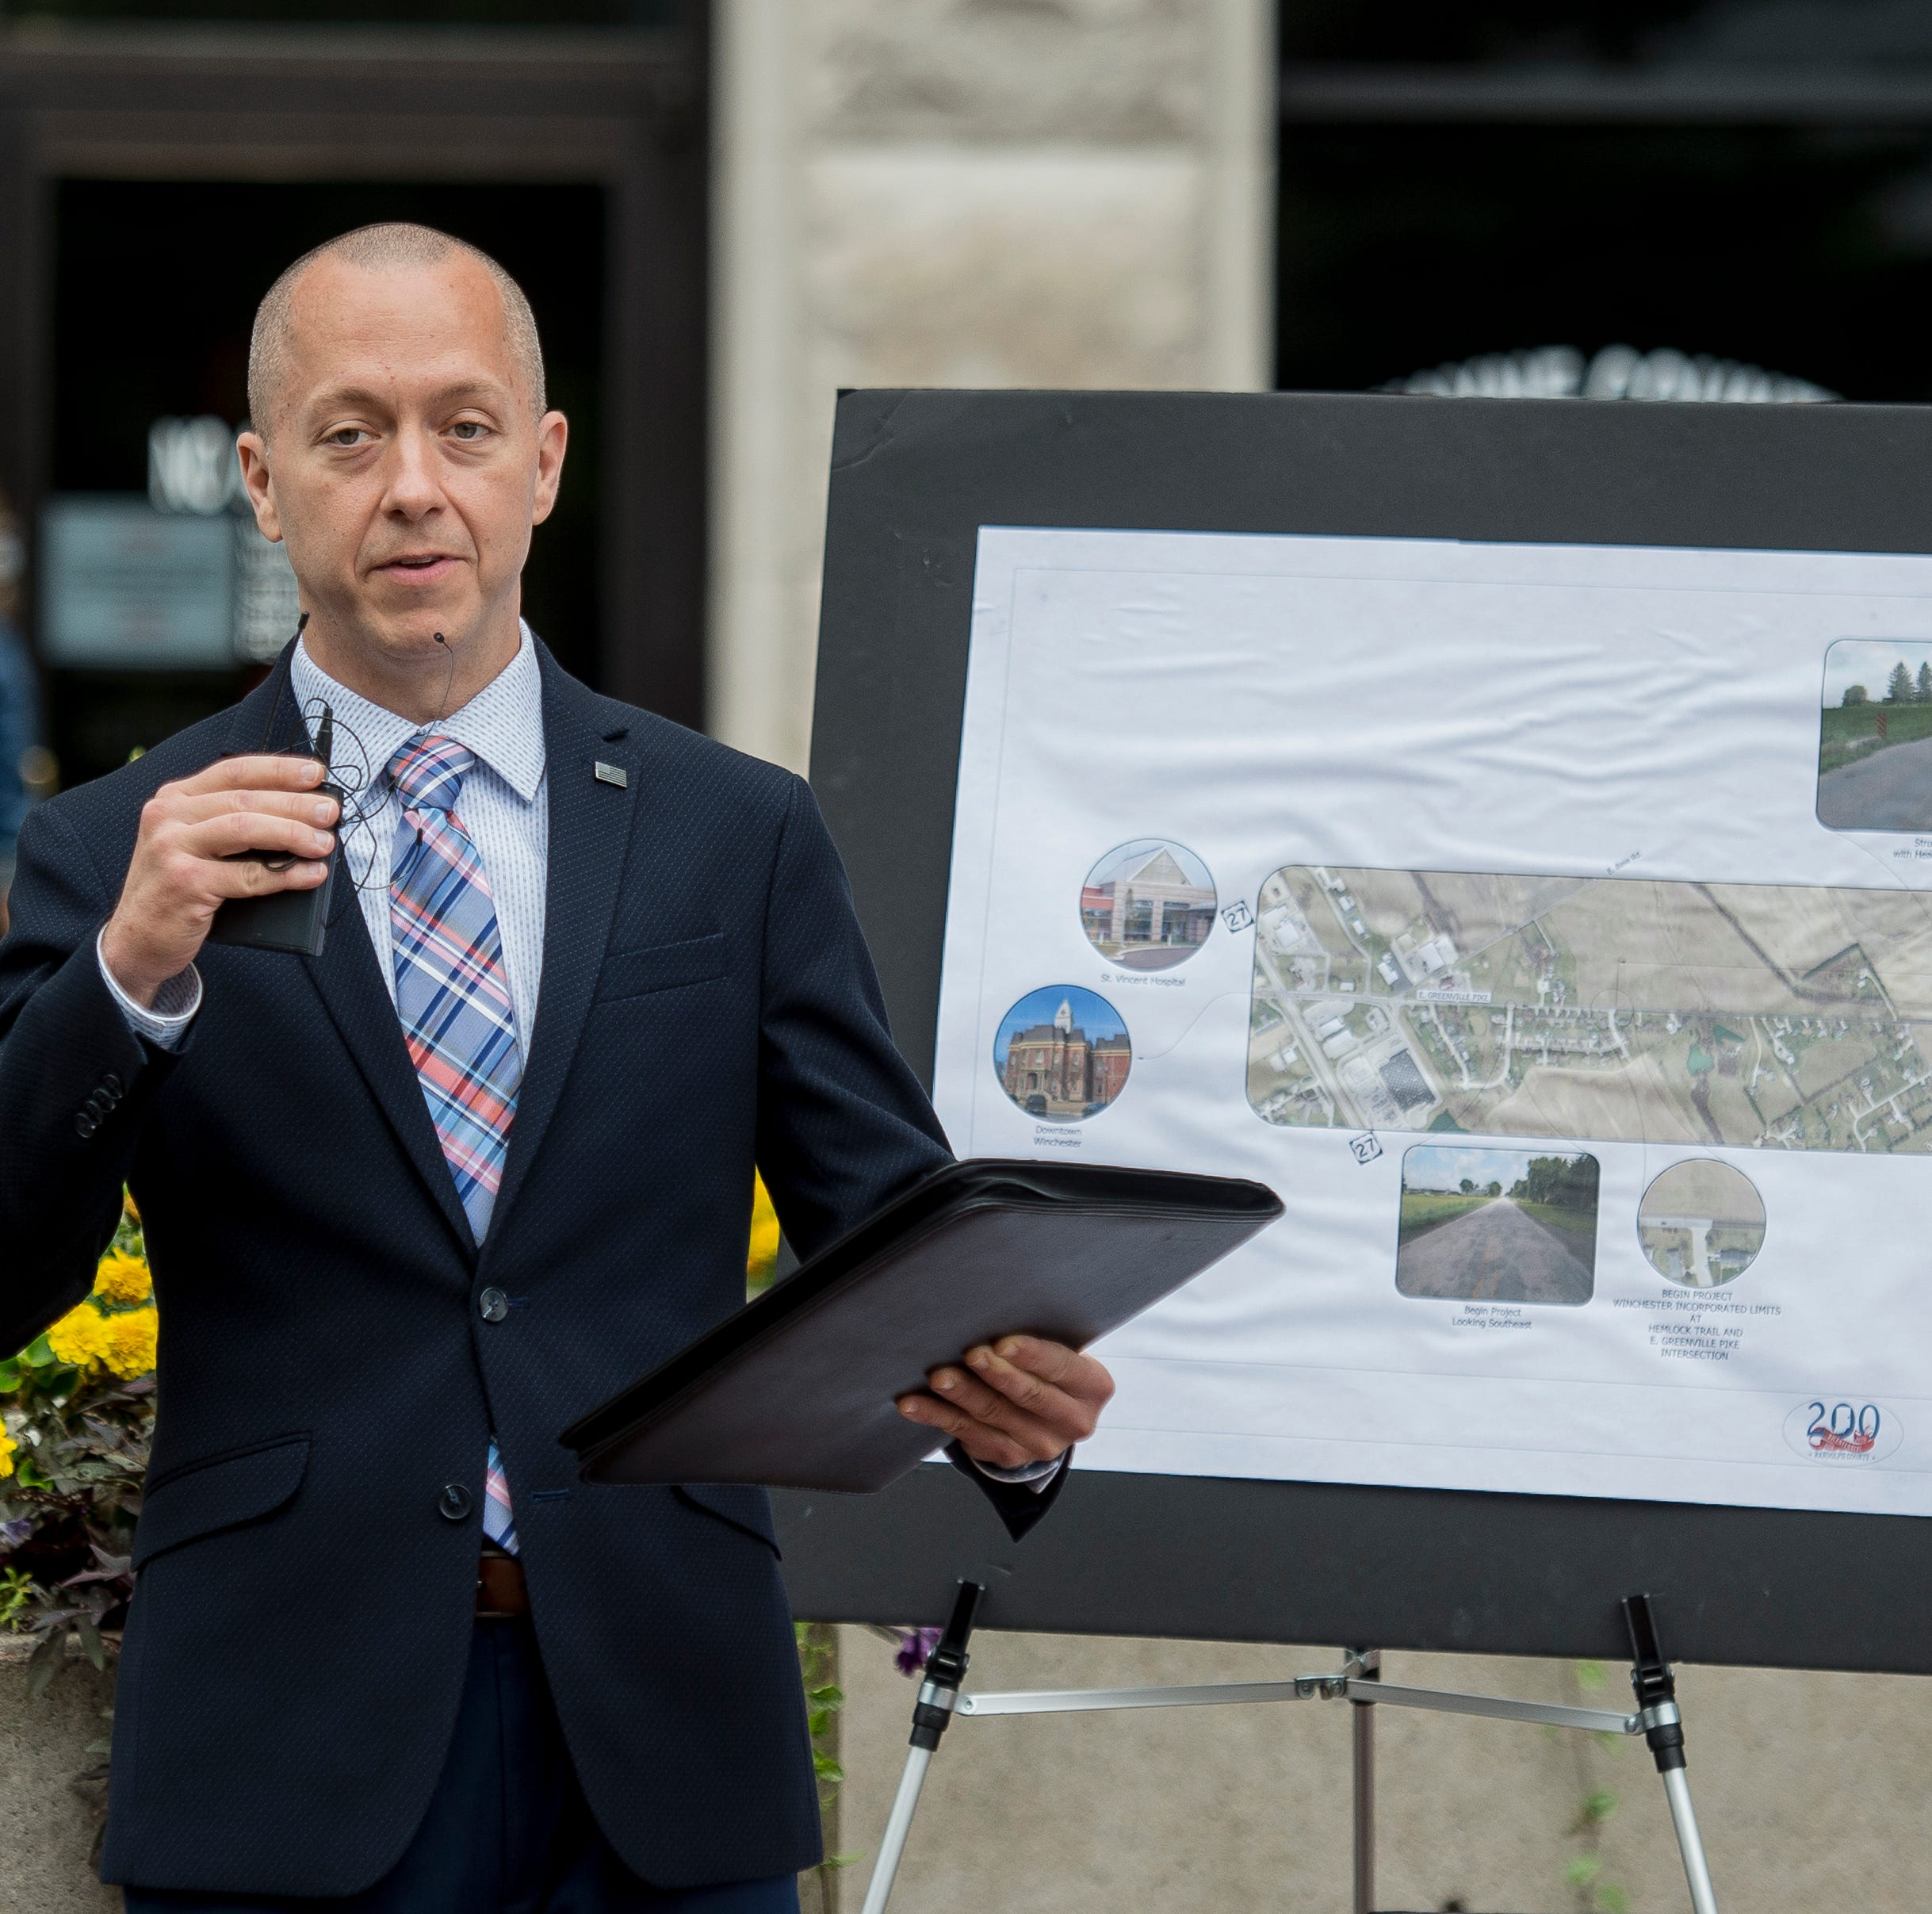 Richmond-included regional group misses out on Stellar designation